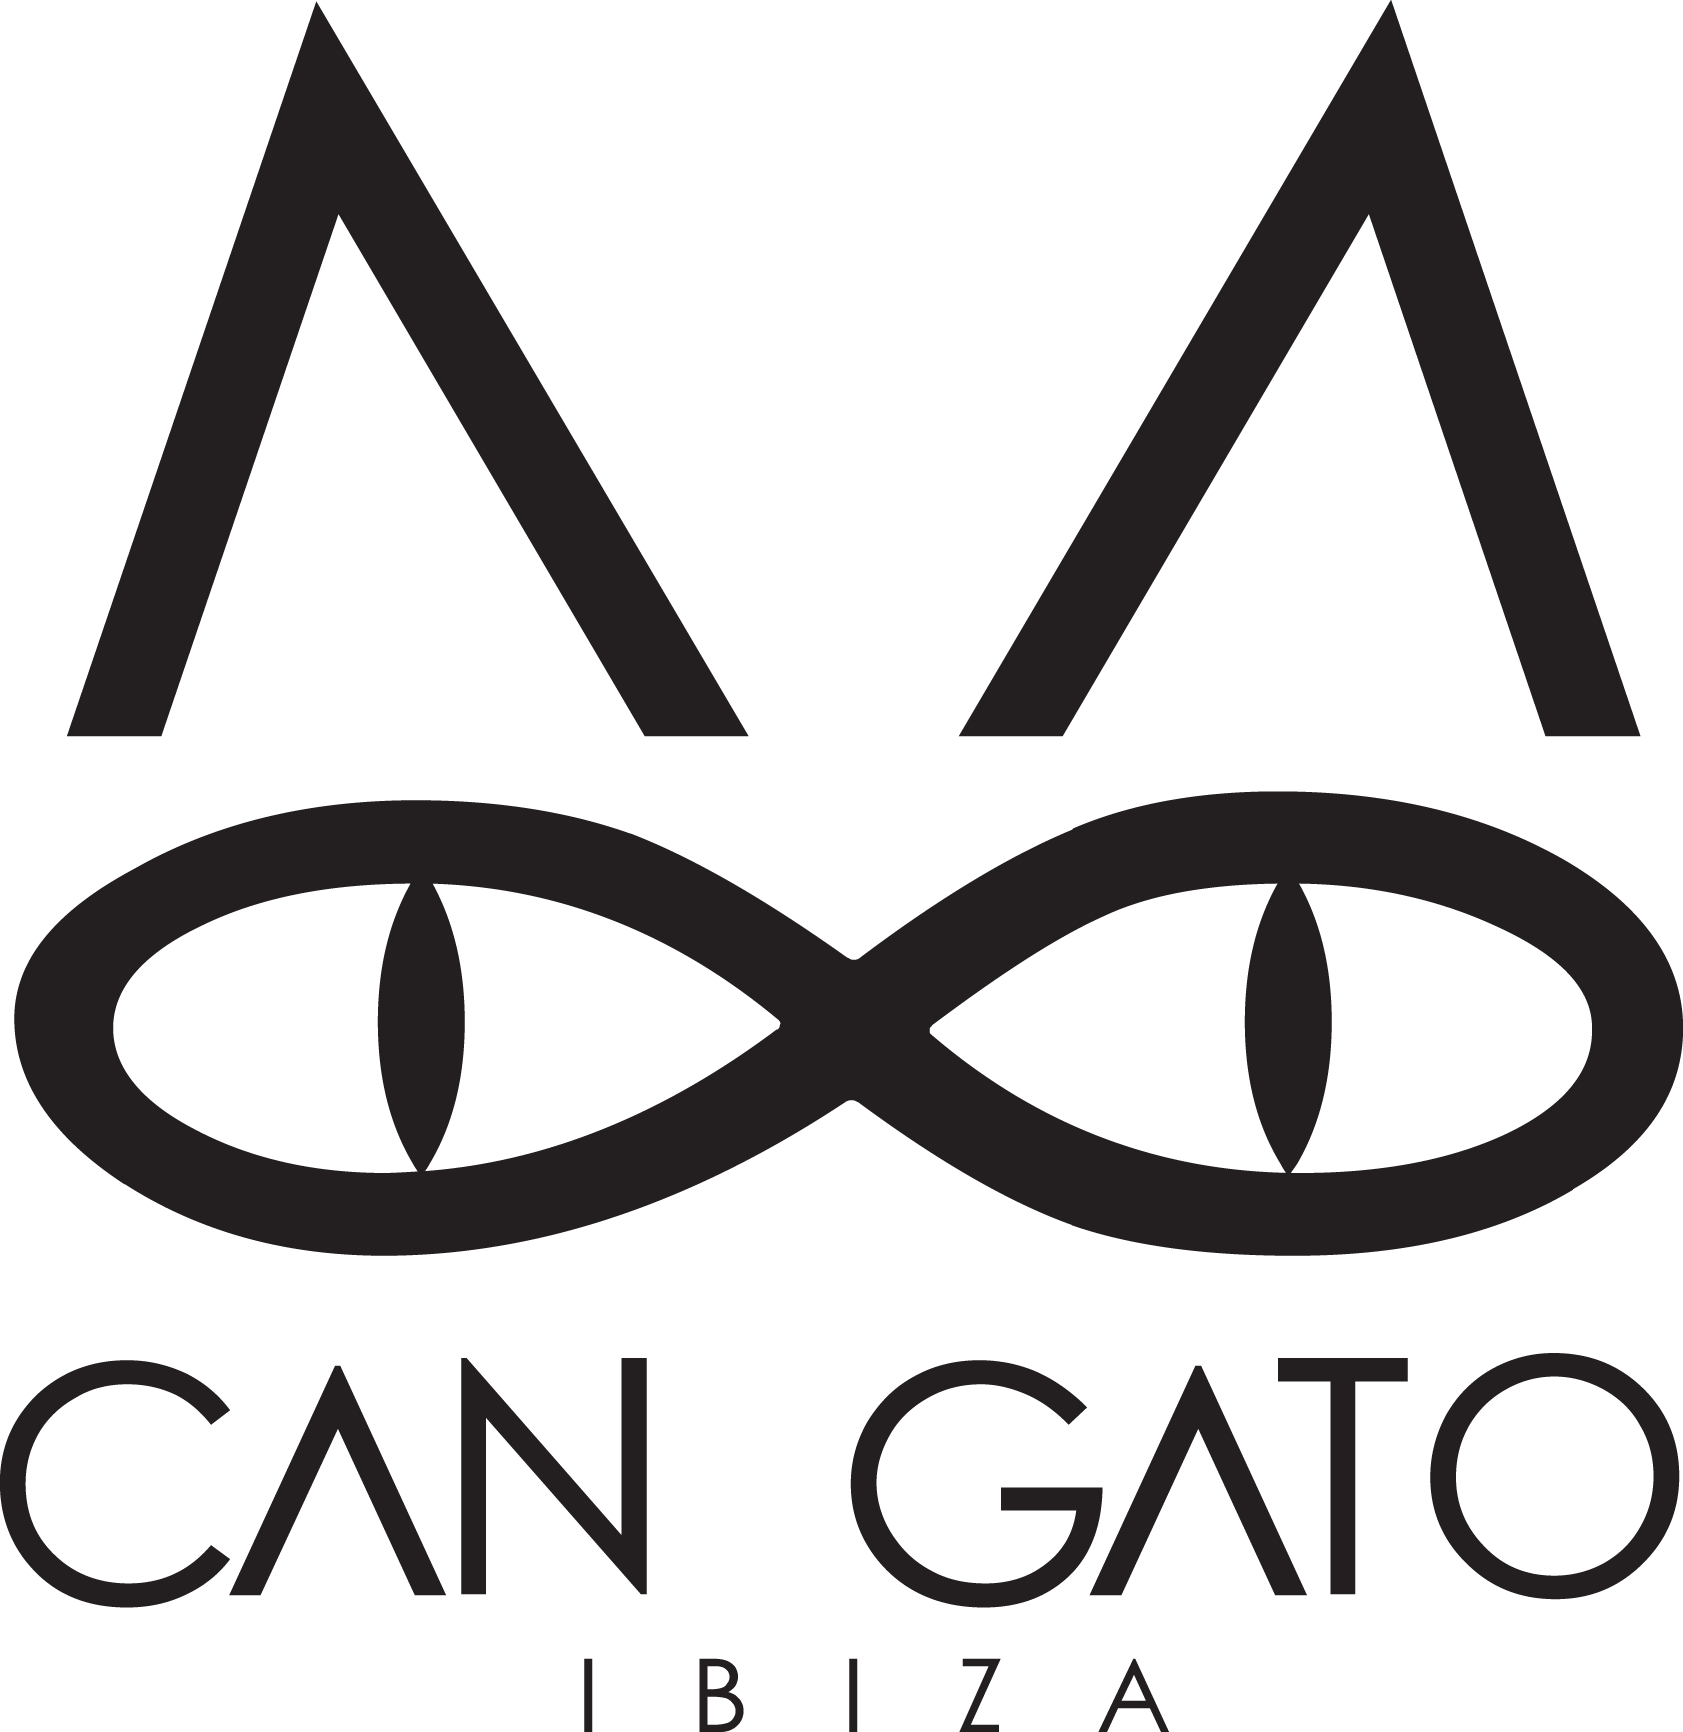 CAN_GATO_LOGO.png